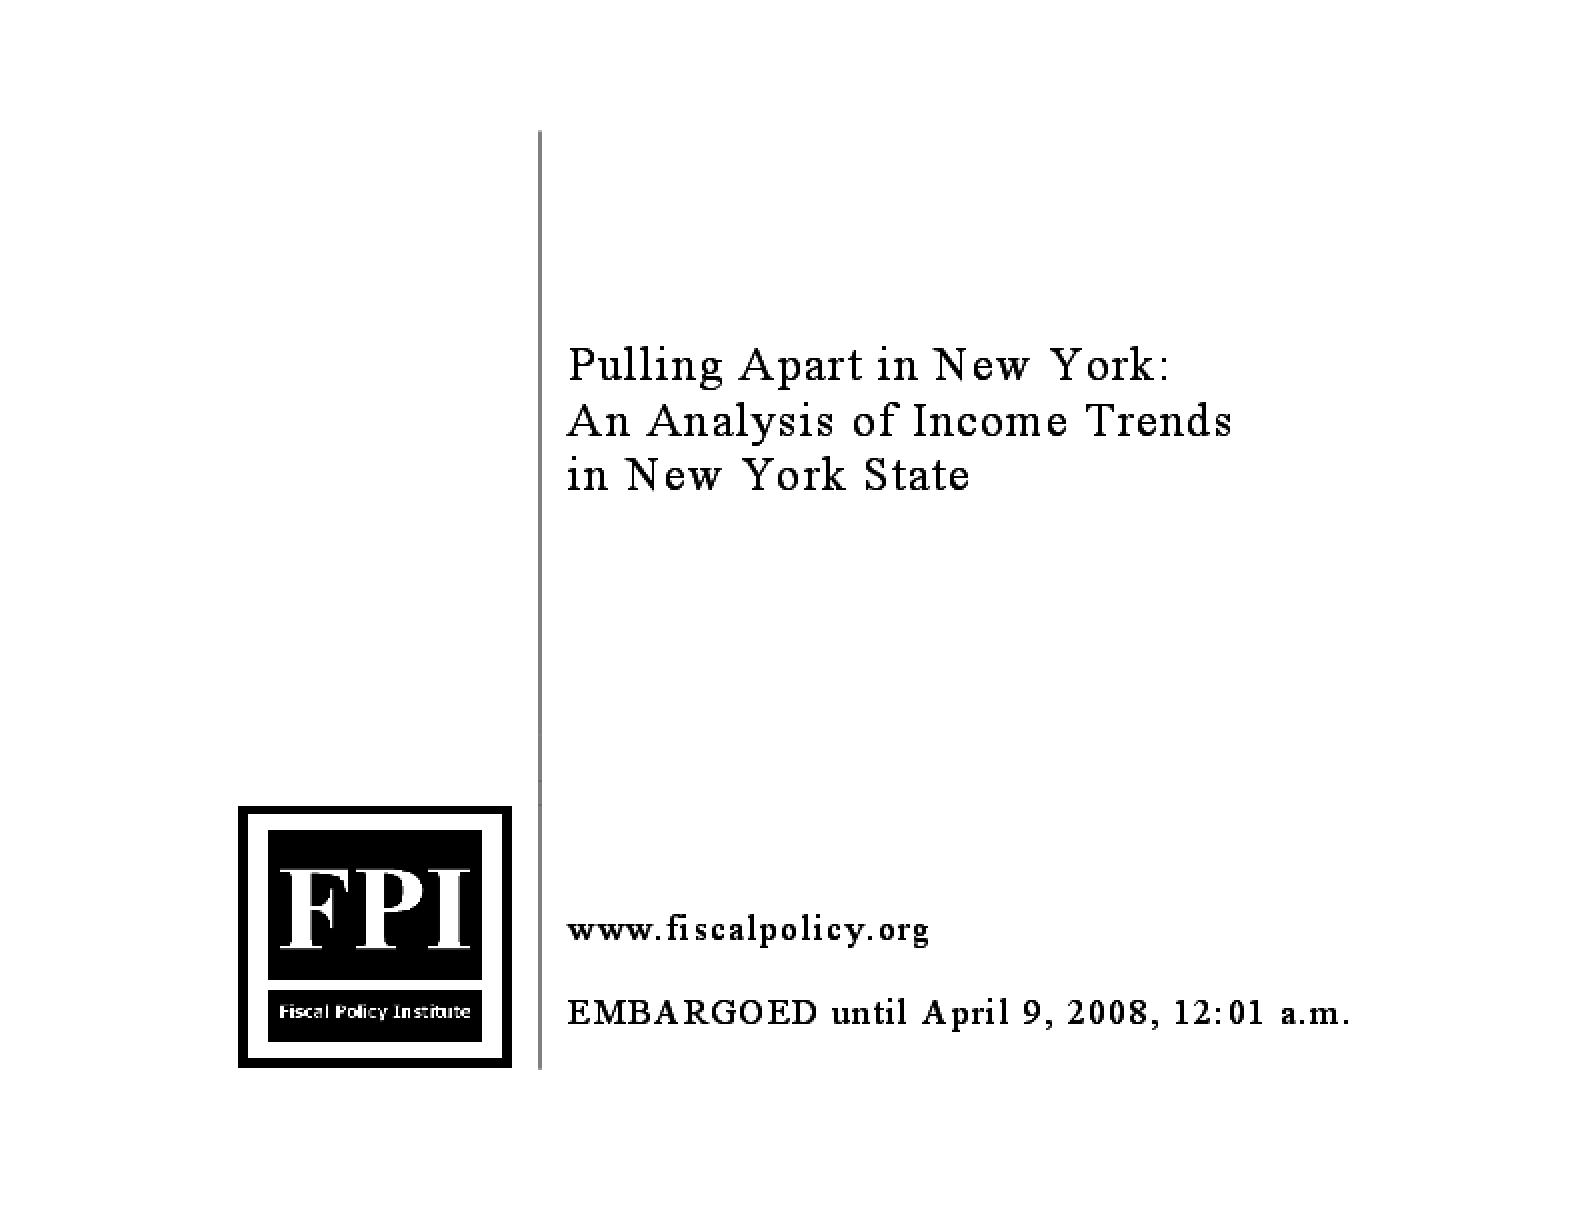 Pulling Apart in New York: An Analysis of Income Trends in New York State